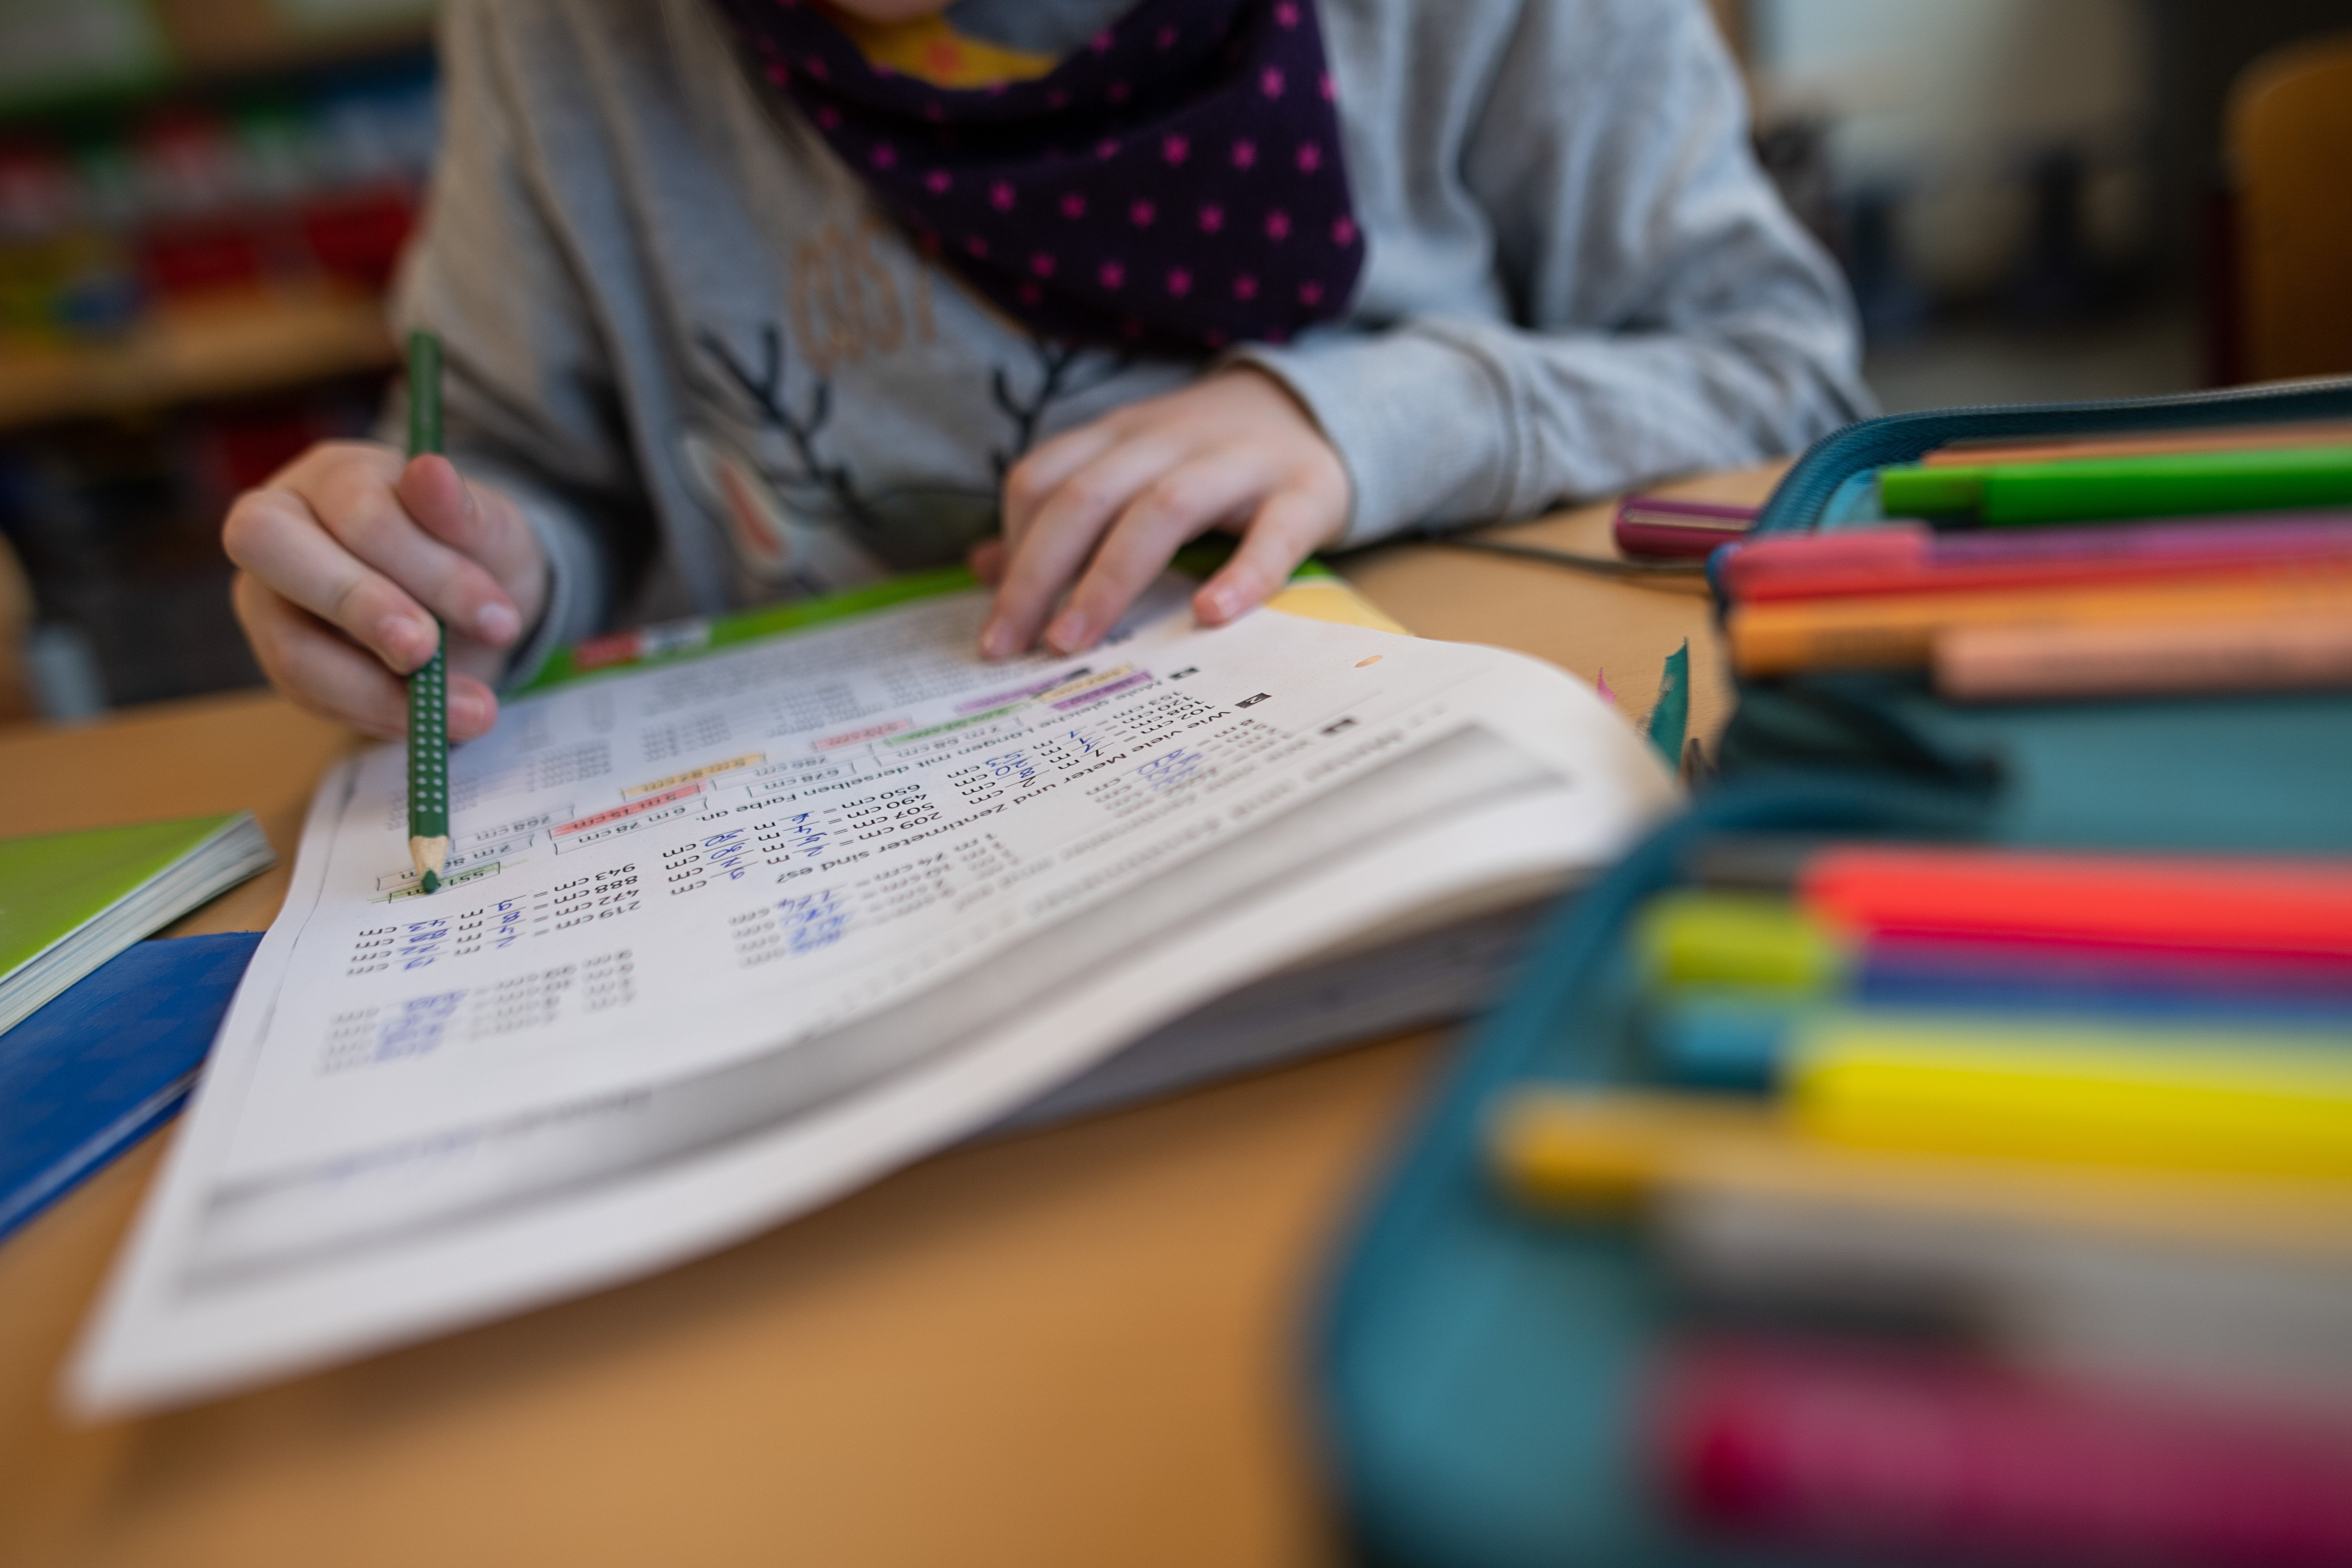 A girl solves a math problem in a primary school|Photo: Getty Images